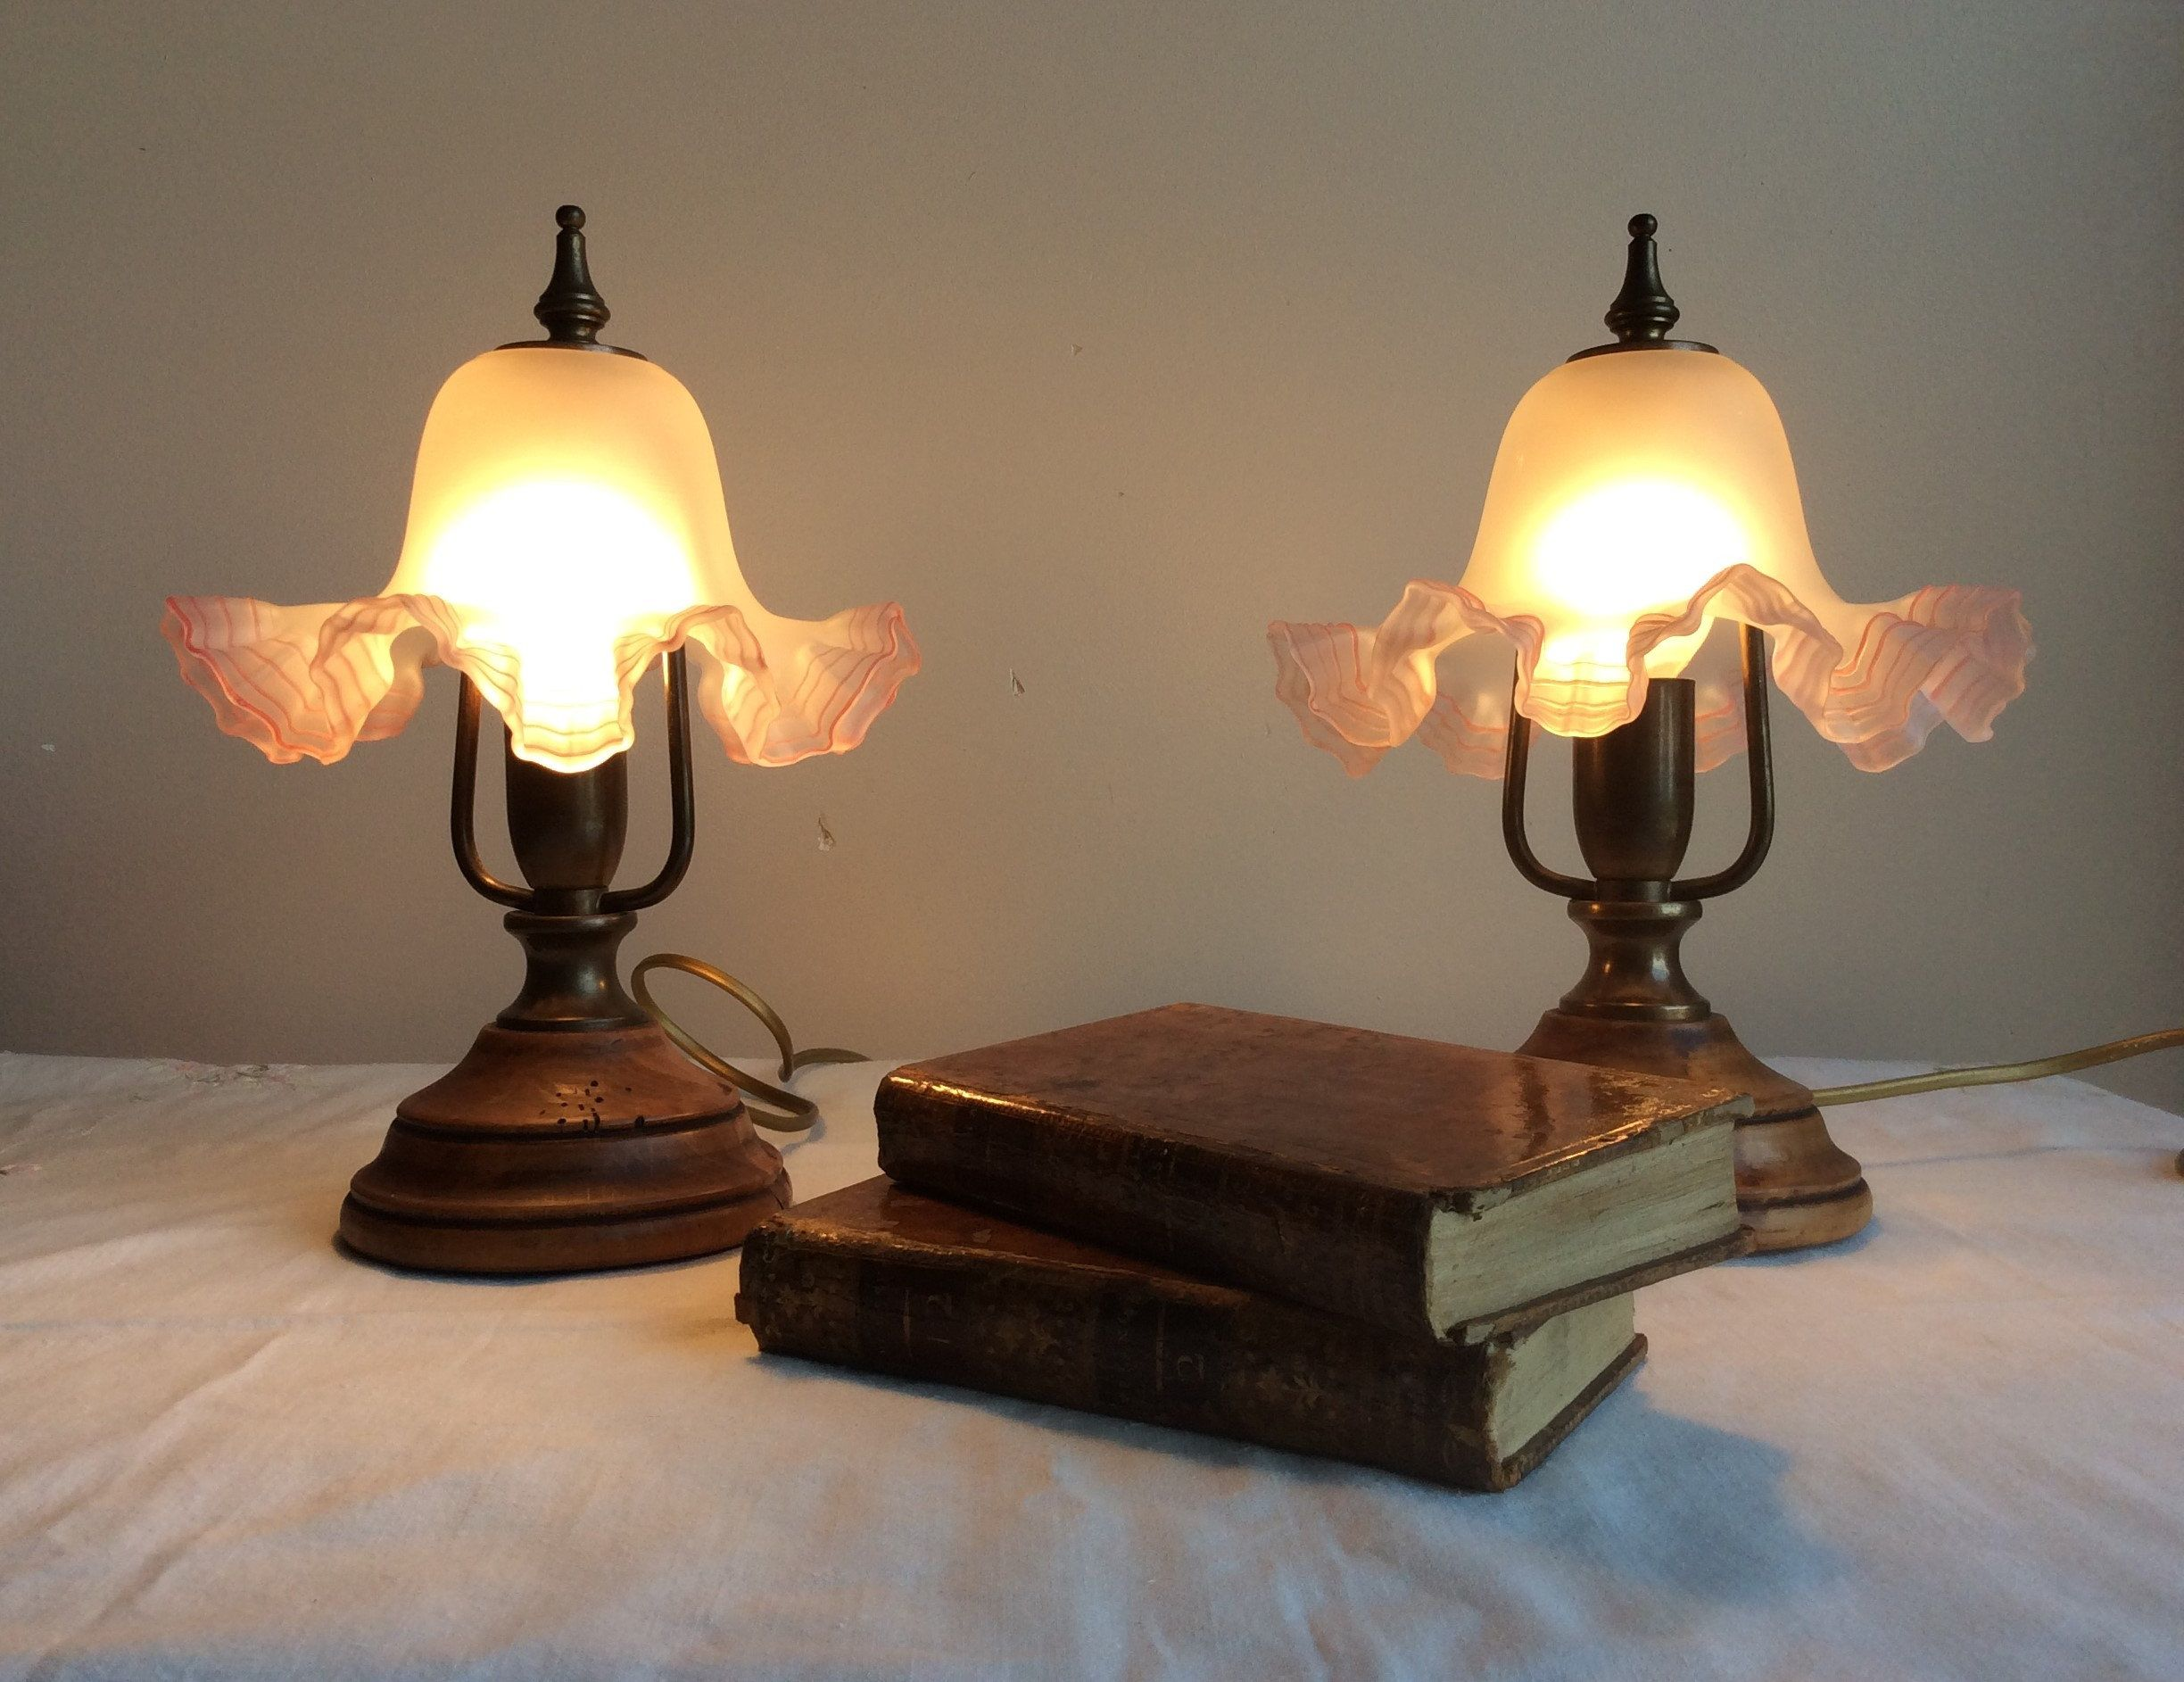 2020 Fashion Quality Ceramic Table Lamp Antique Vintage Style Cloth Lamp Cover Dimmer Switch From Lucysgj 155 64 Dhgate Com Antique Table Lamps Vintage Table Lamp Victorian Lampshades